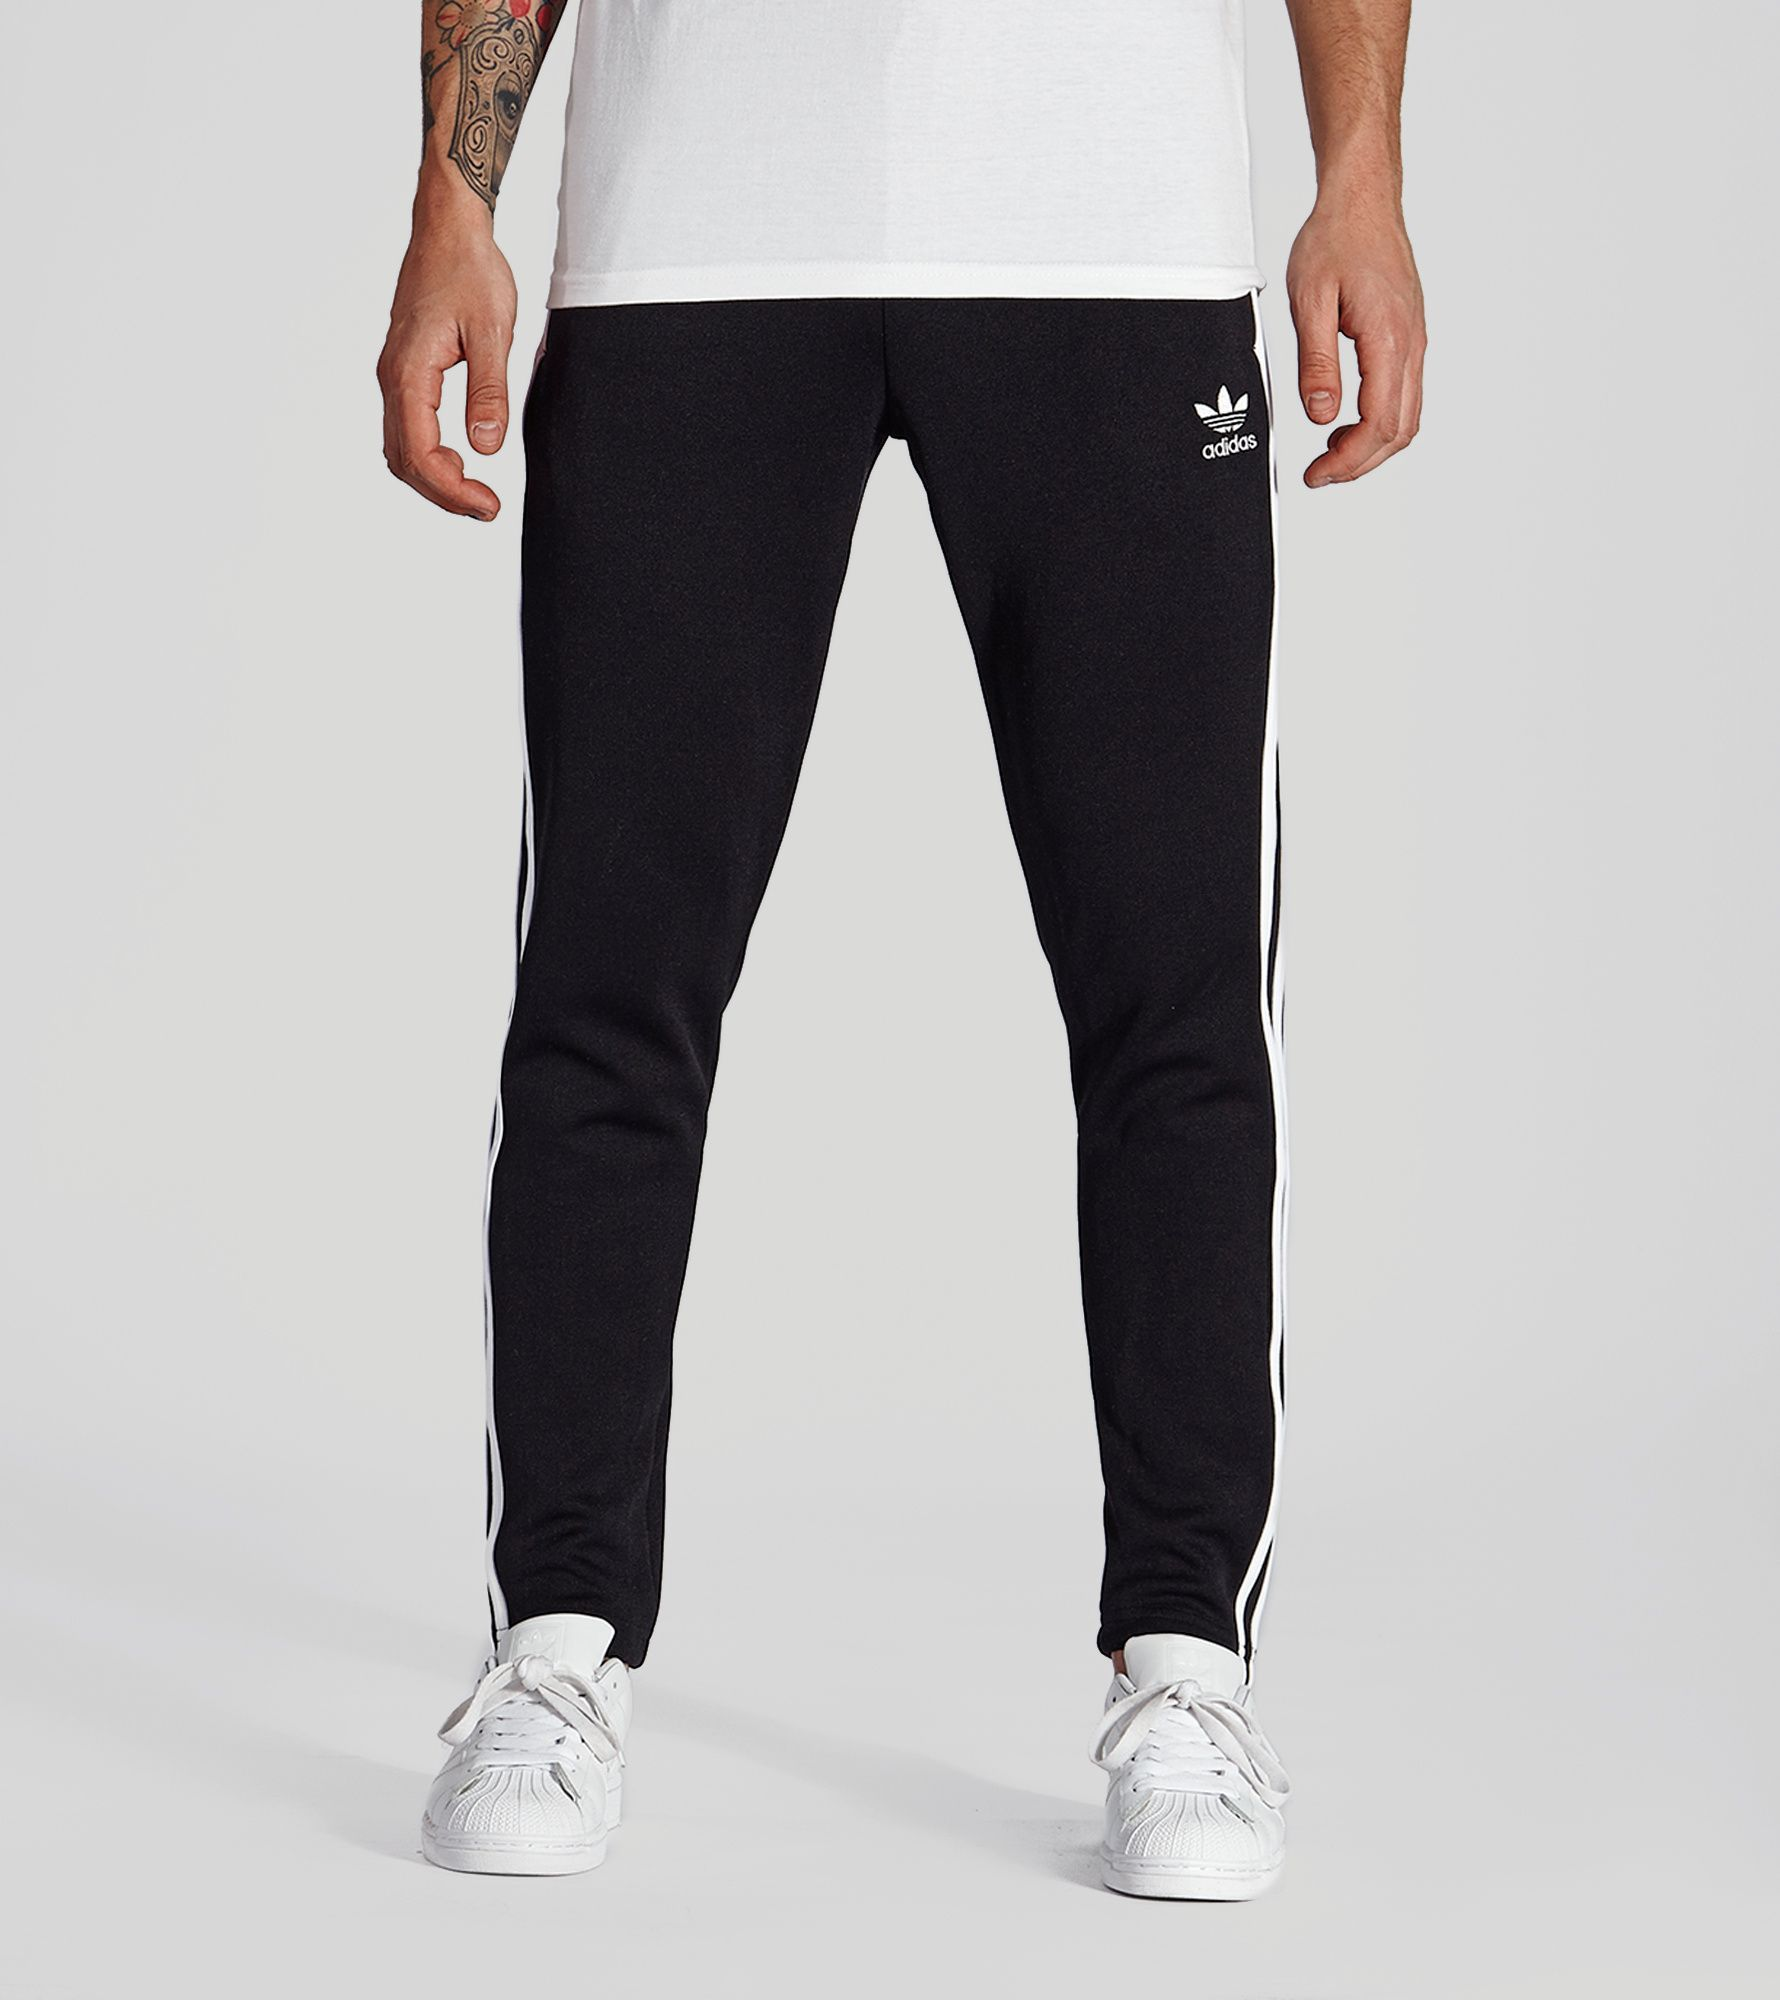 adidas Originals Superstar Taper Track Pants - find out more on our site.  Find the